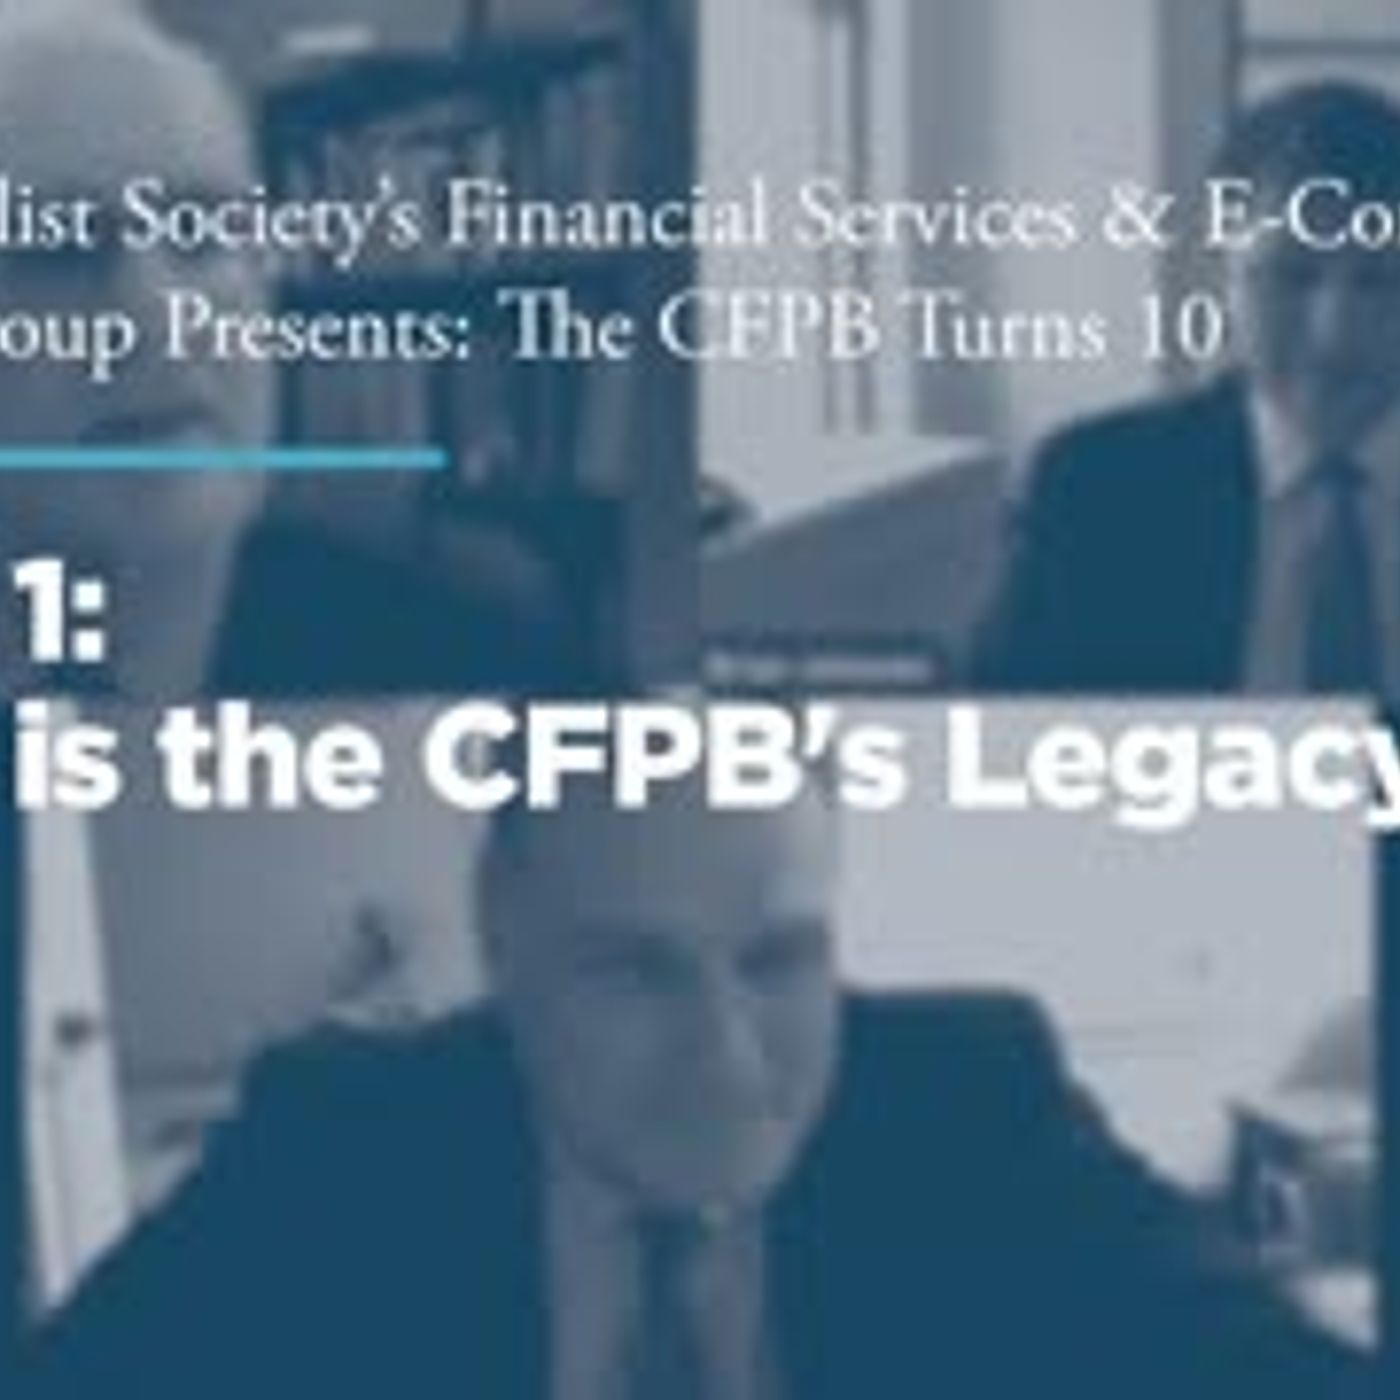 Panel 1: What is the CFPB's Legacy?